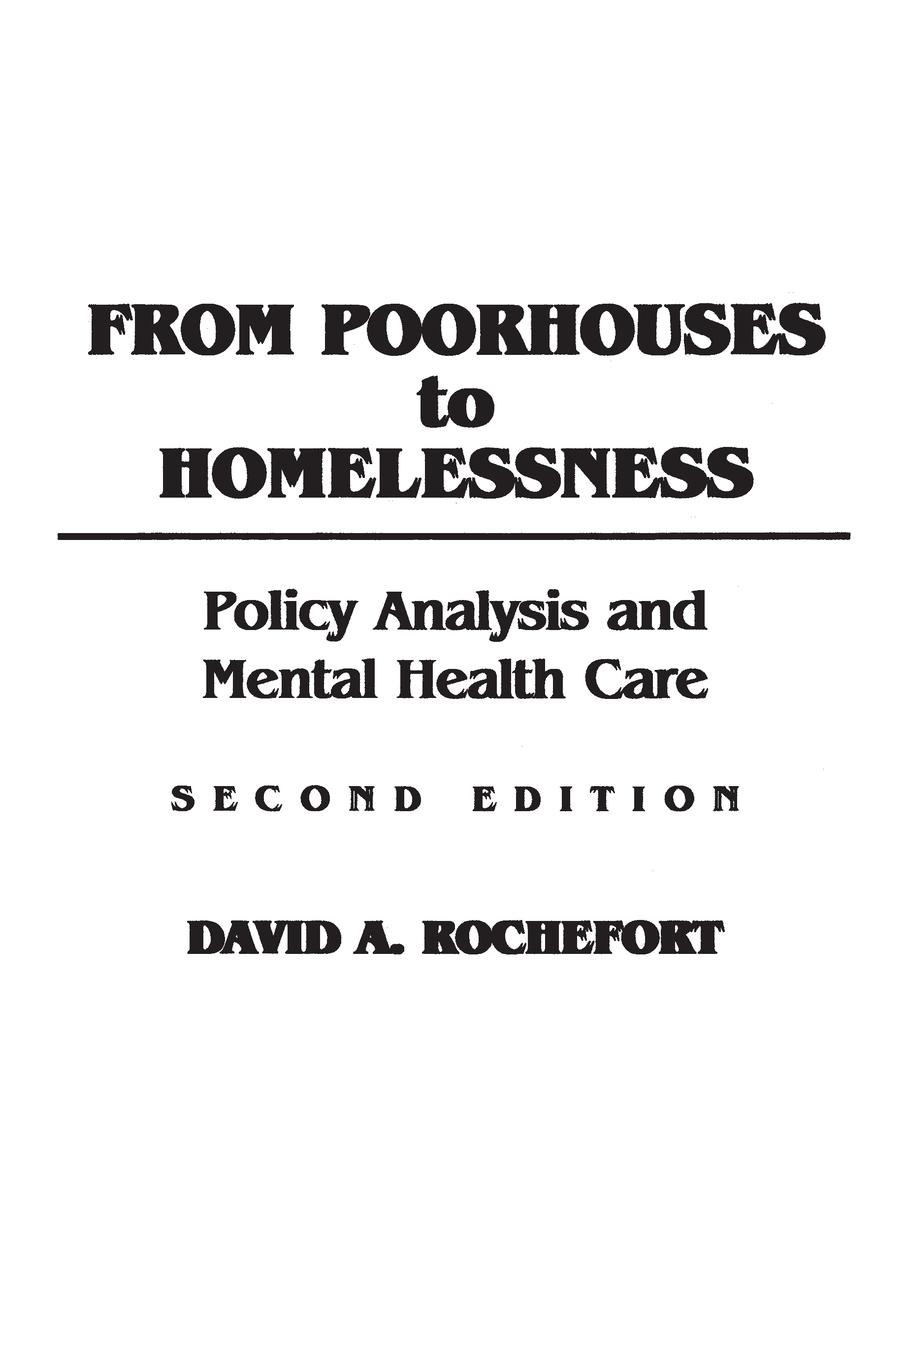 лучшая цена David Rochefort From Poorhouses to Homelessness. Policy Analysis and Mental Health Care